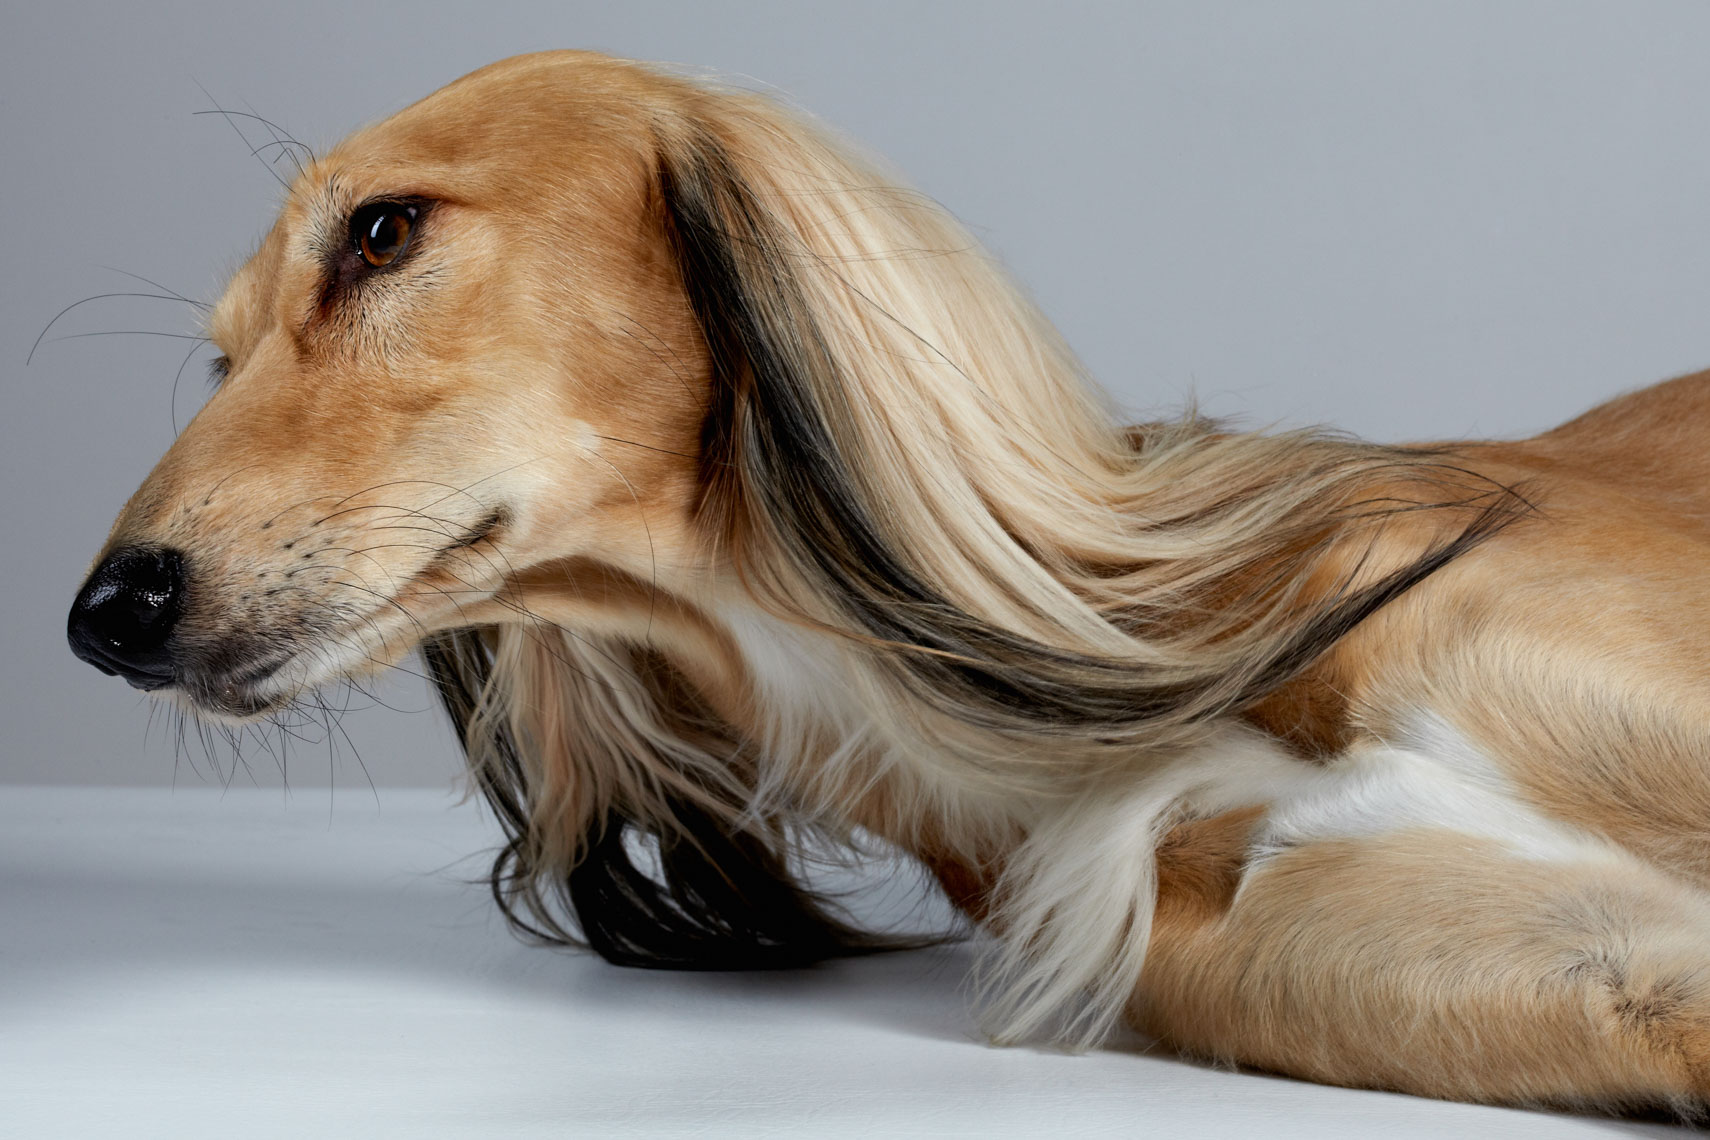 dog pet commercial animal photographer san francisco bay area pet portrait  Arabian saluki  canine